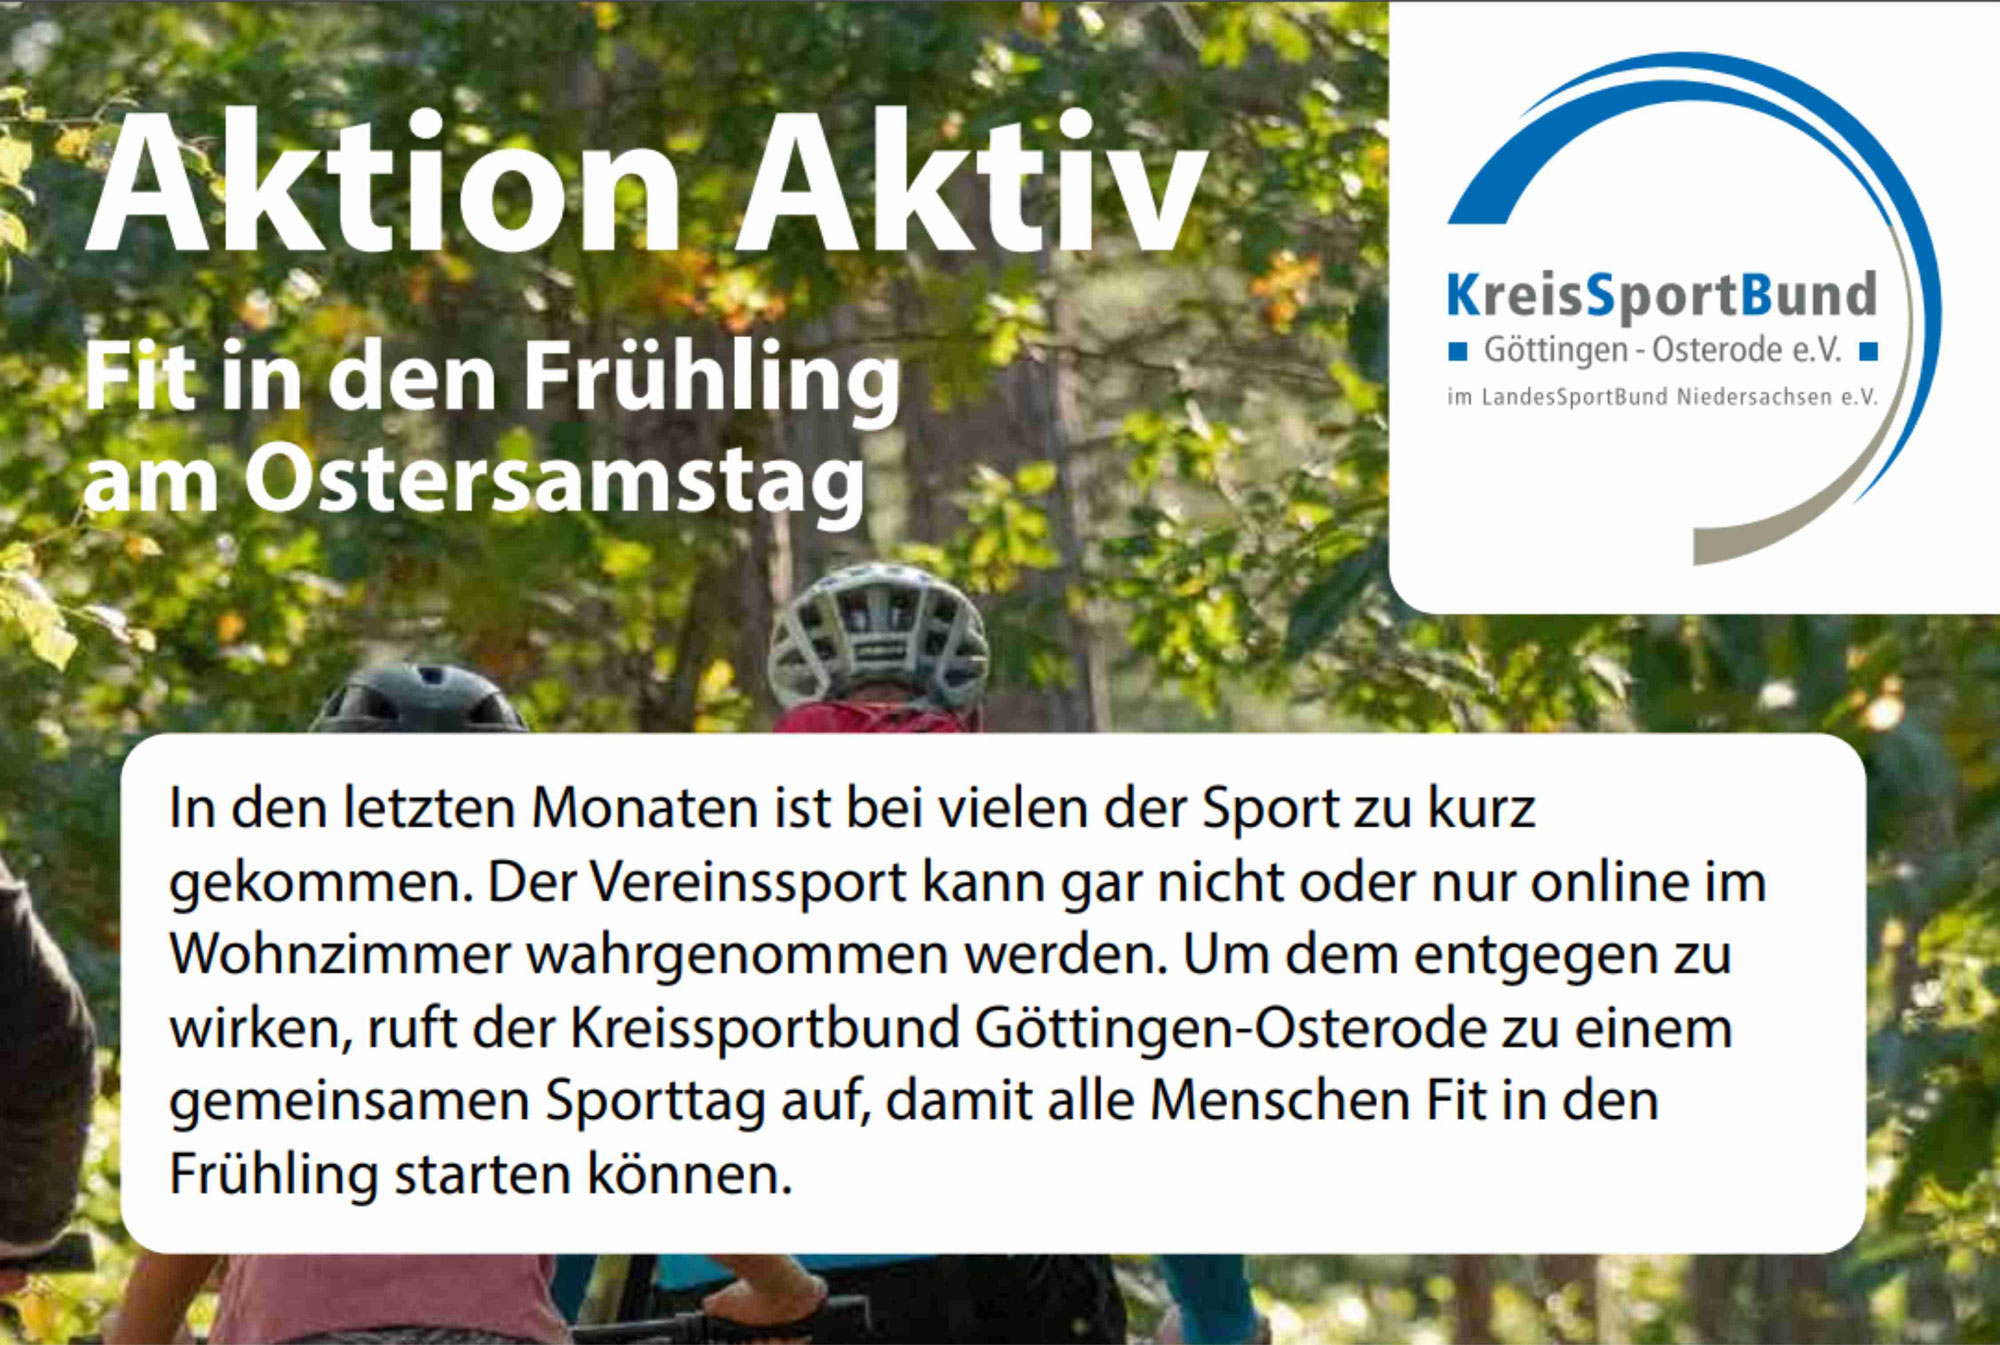 Aktion Aktiv - Fit in den Frühling am Ostersamstag